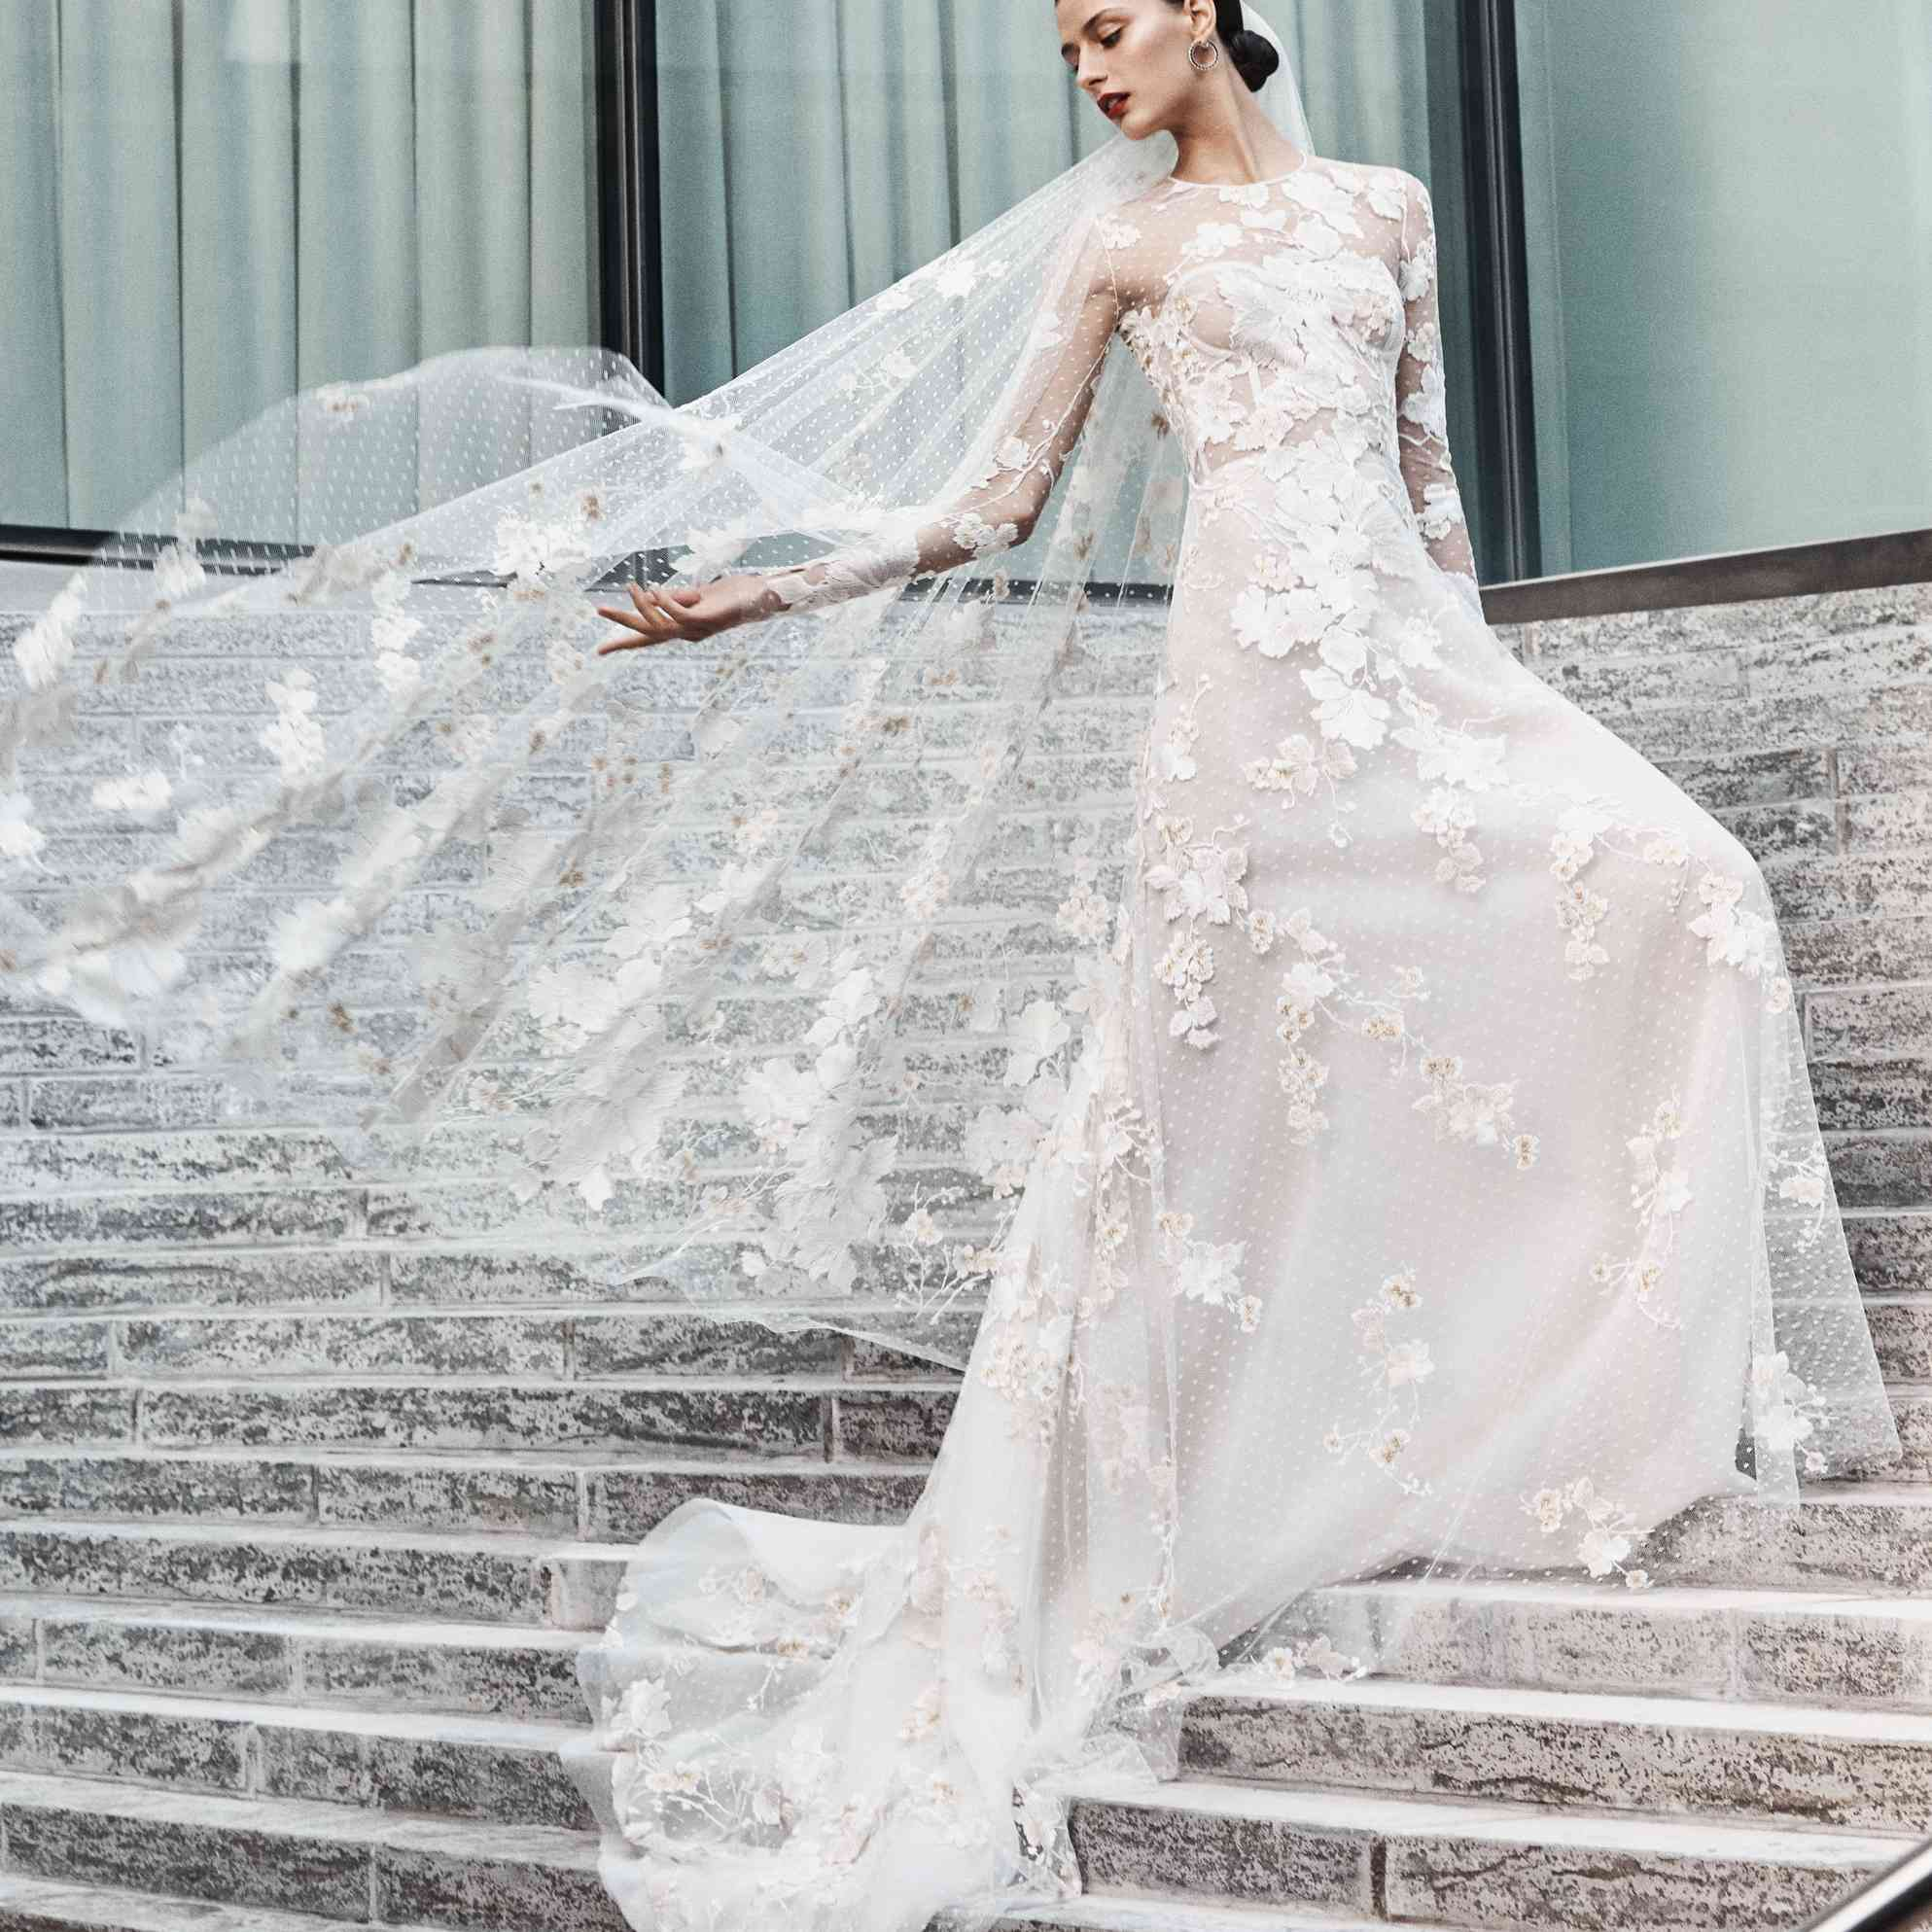 Model on stairs in long-sleeve floral embroidered dress with flowing veil